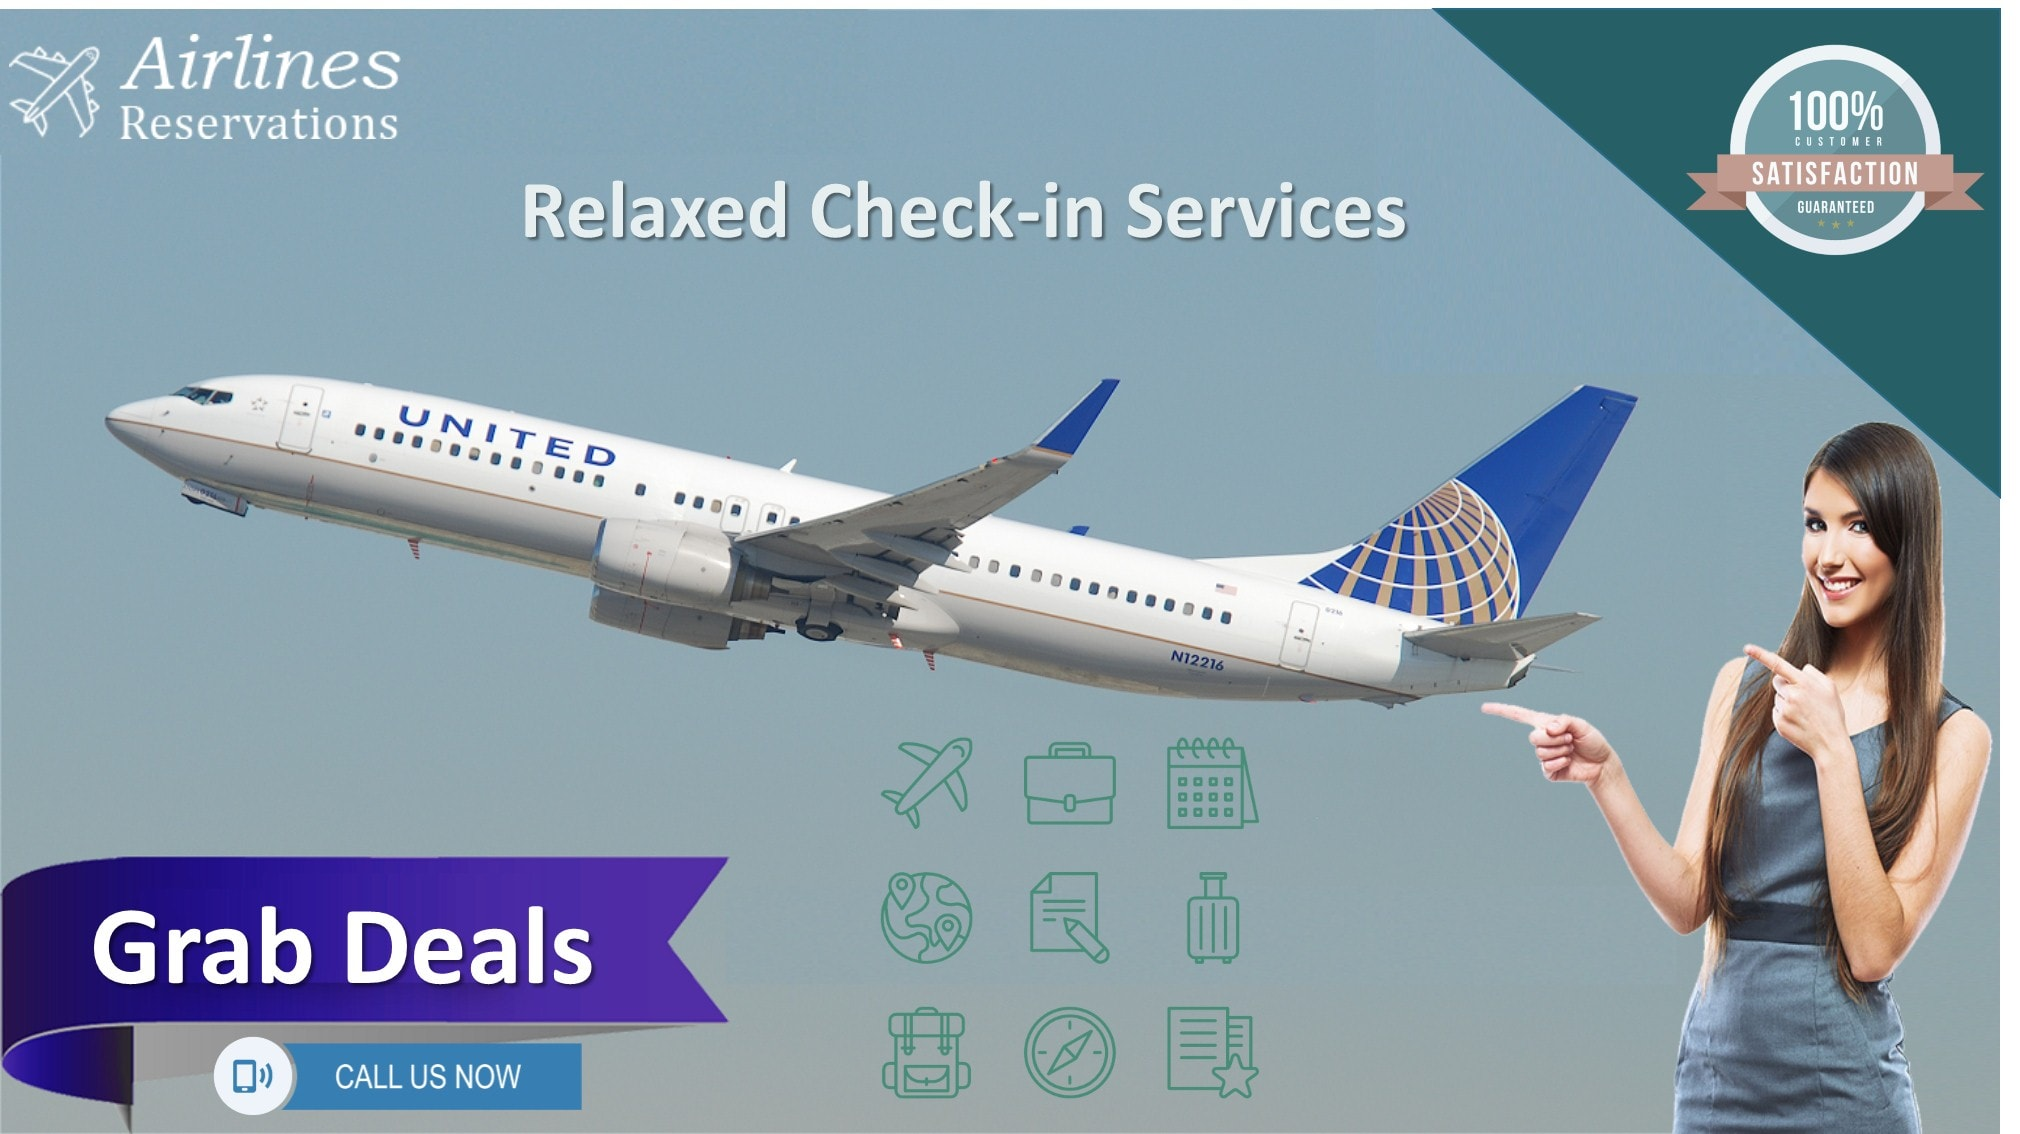 United-Airlines-Reservations-Make-Your-Trips-Memorable-Grab-Deals